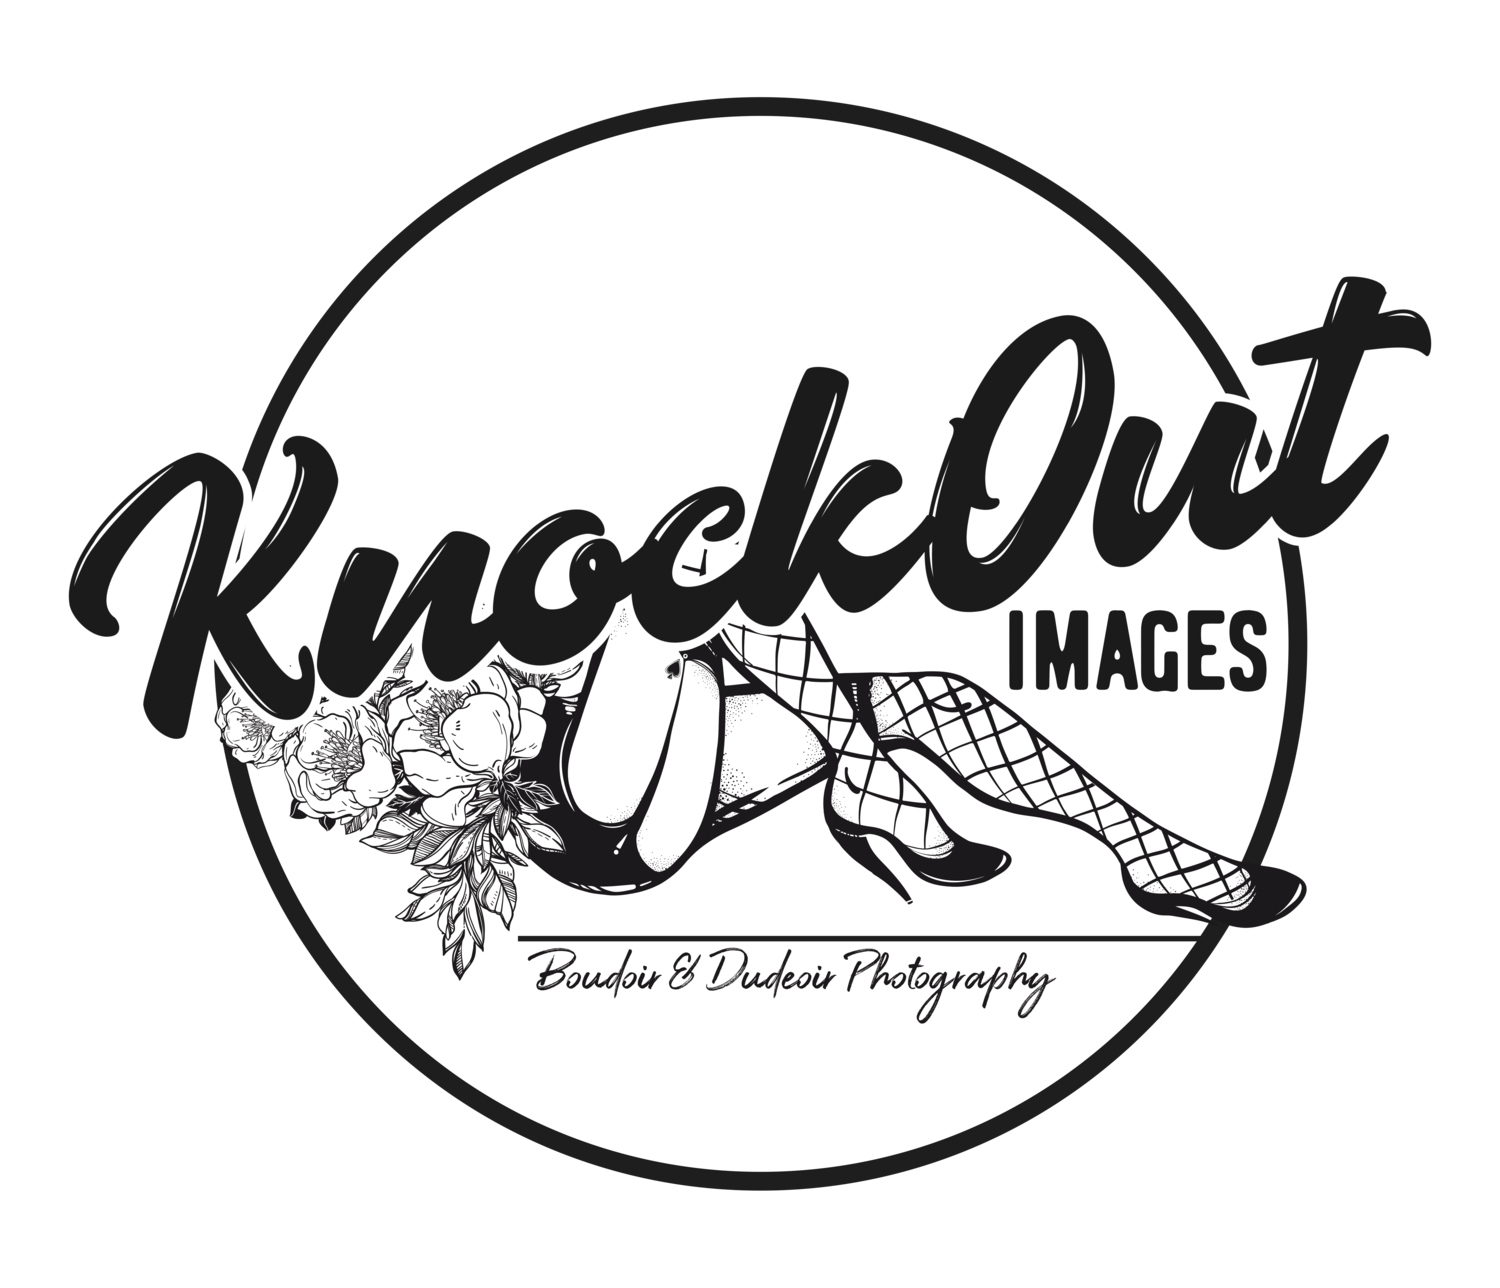 KnockOut Images